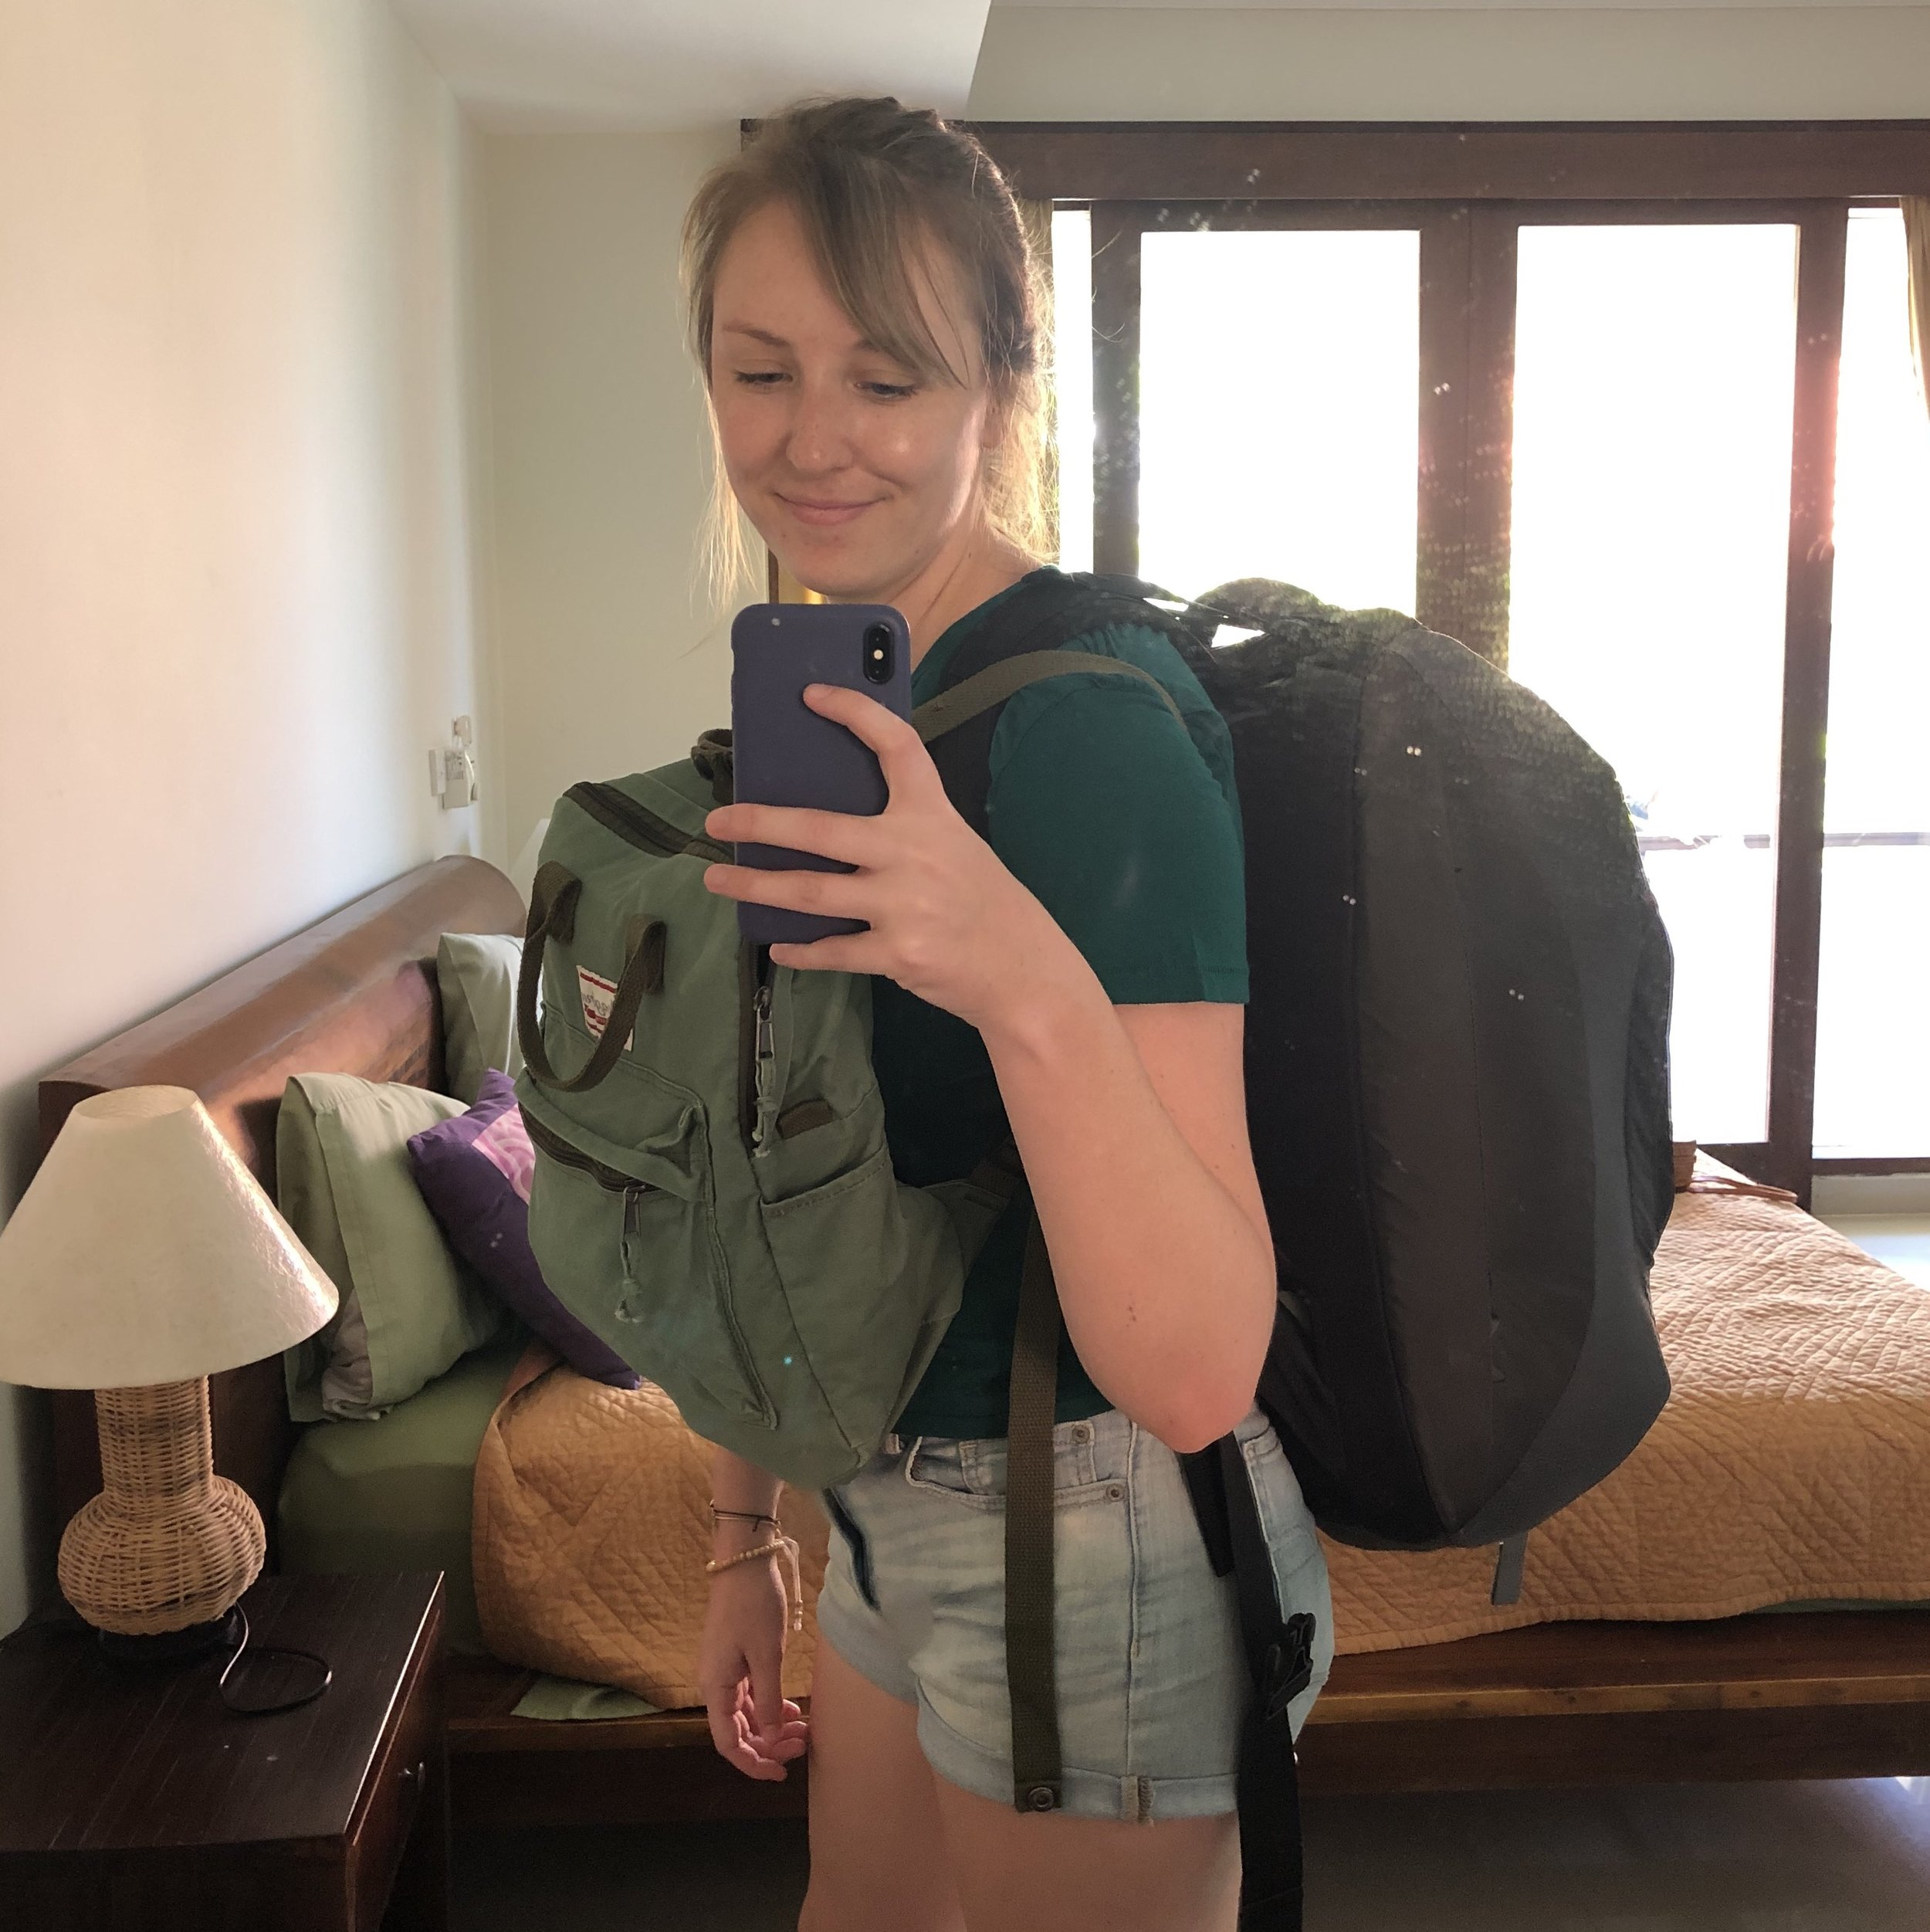 In Ubud, Bali, getting ready to go to the airport in Denpasar. Not pictured: my cross body bag